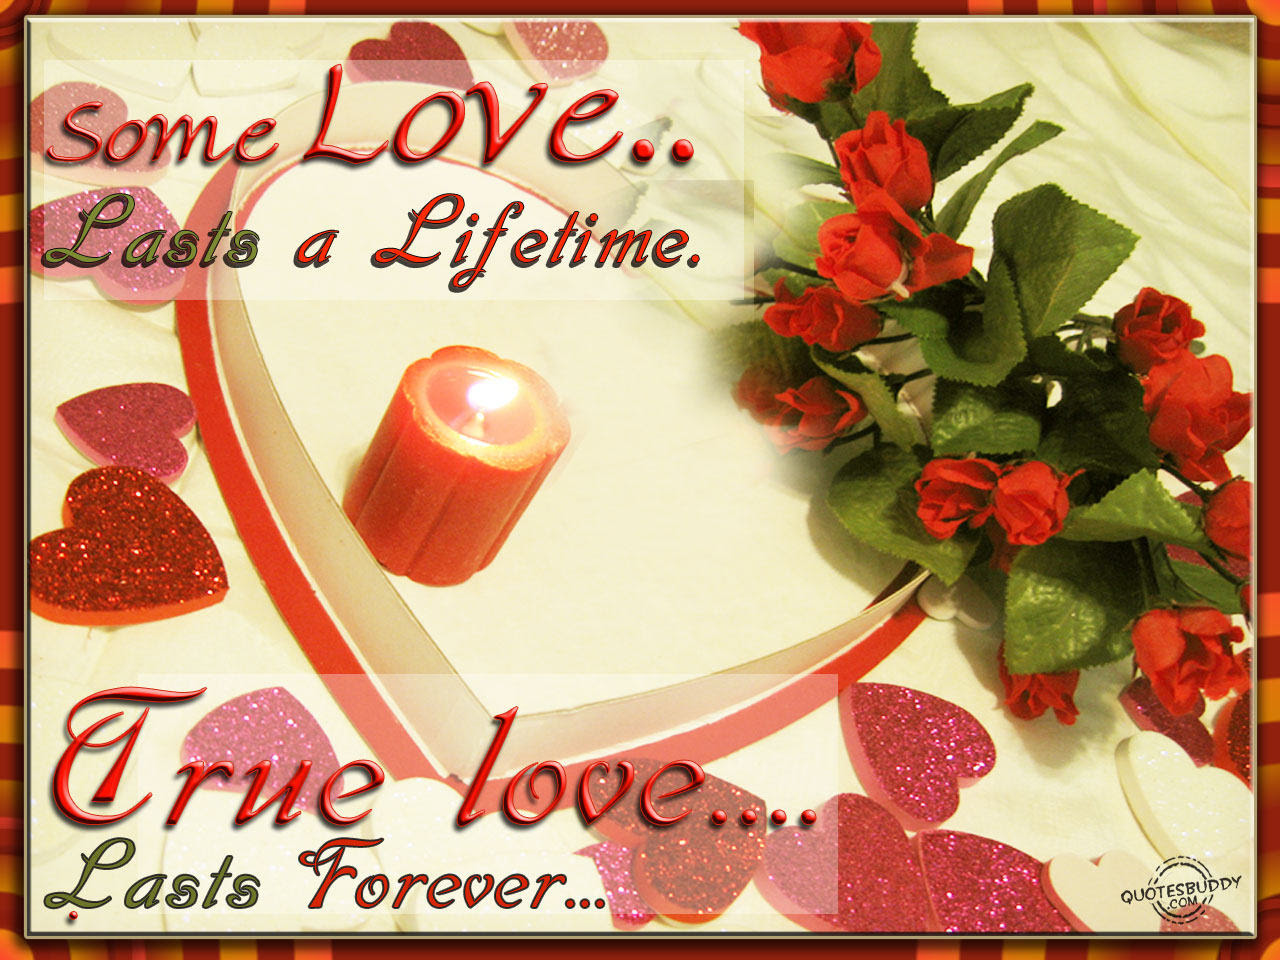 Some Love Lasts A Lifetime True Love Lasts Forever Aplology